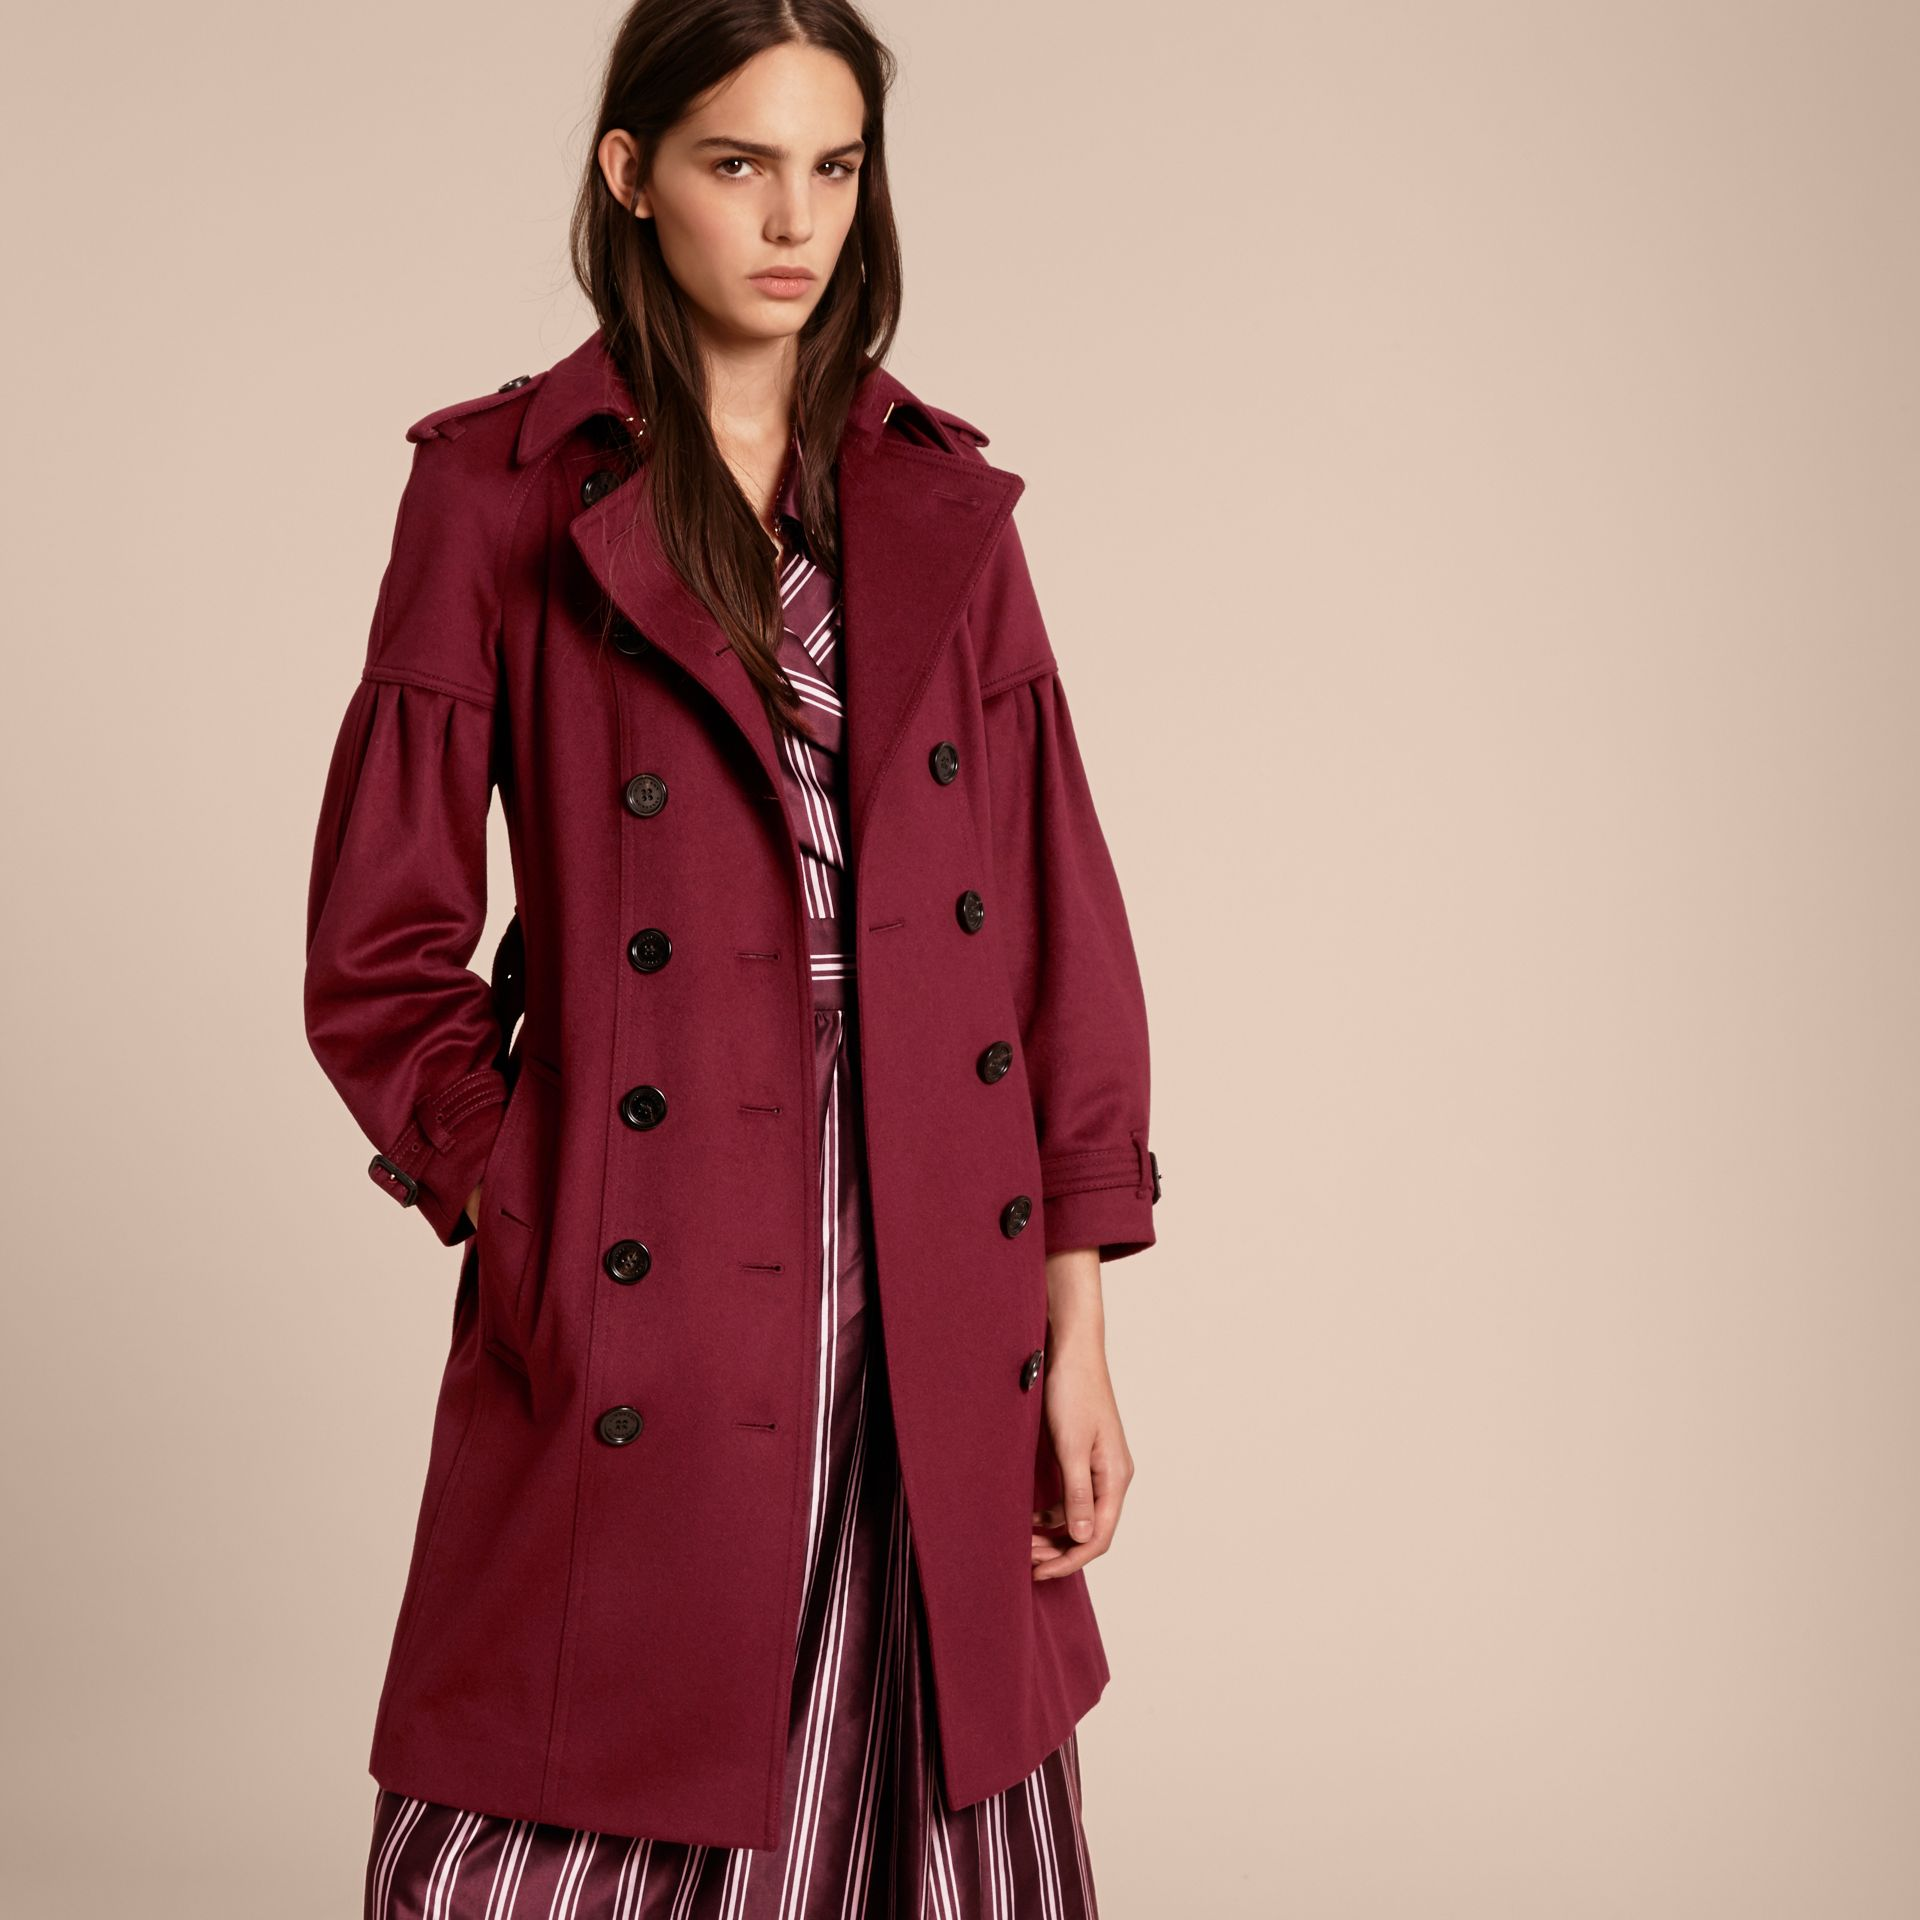 Burgundy Cashmere Trench Coat with Puff Sleeves Burgundy - gallery image 7